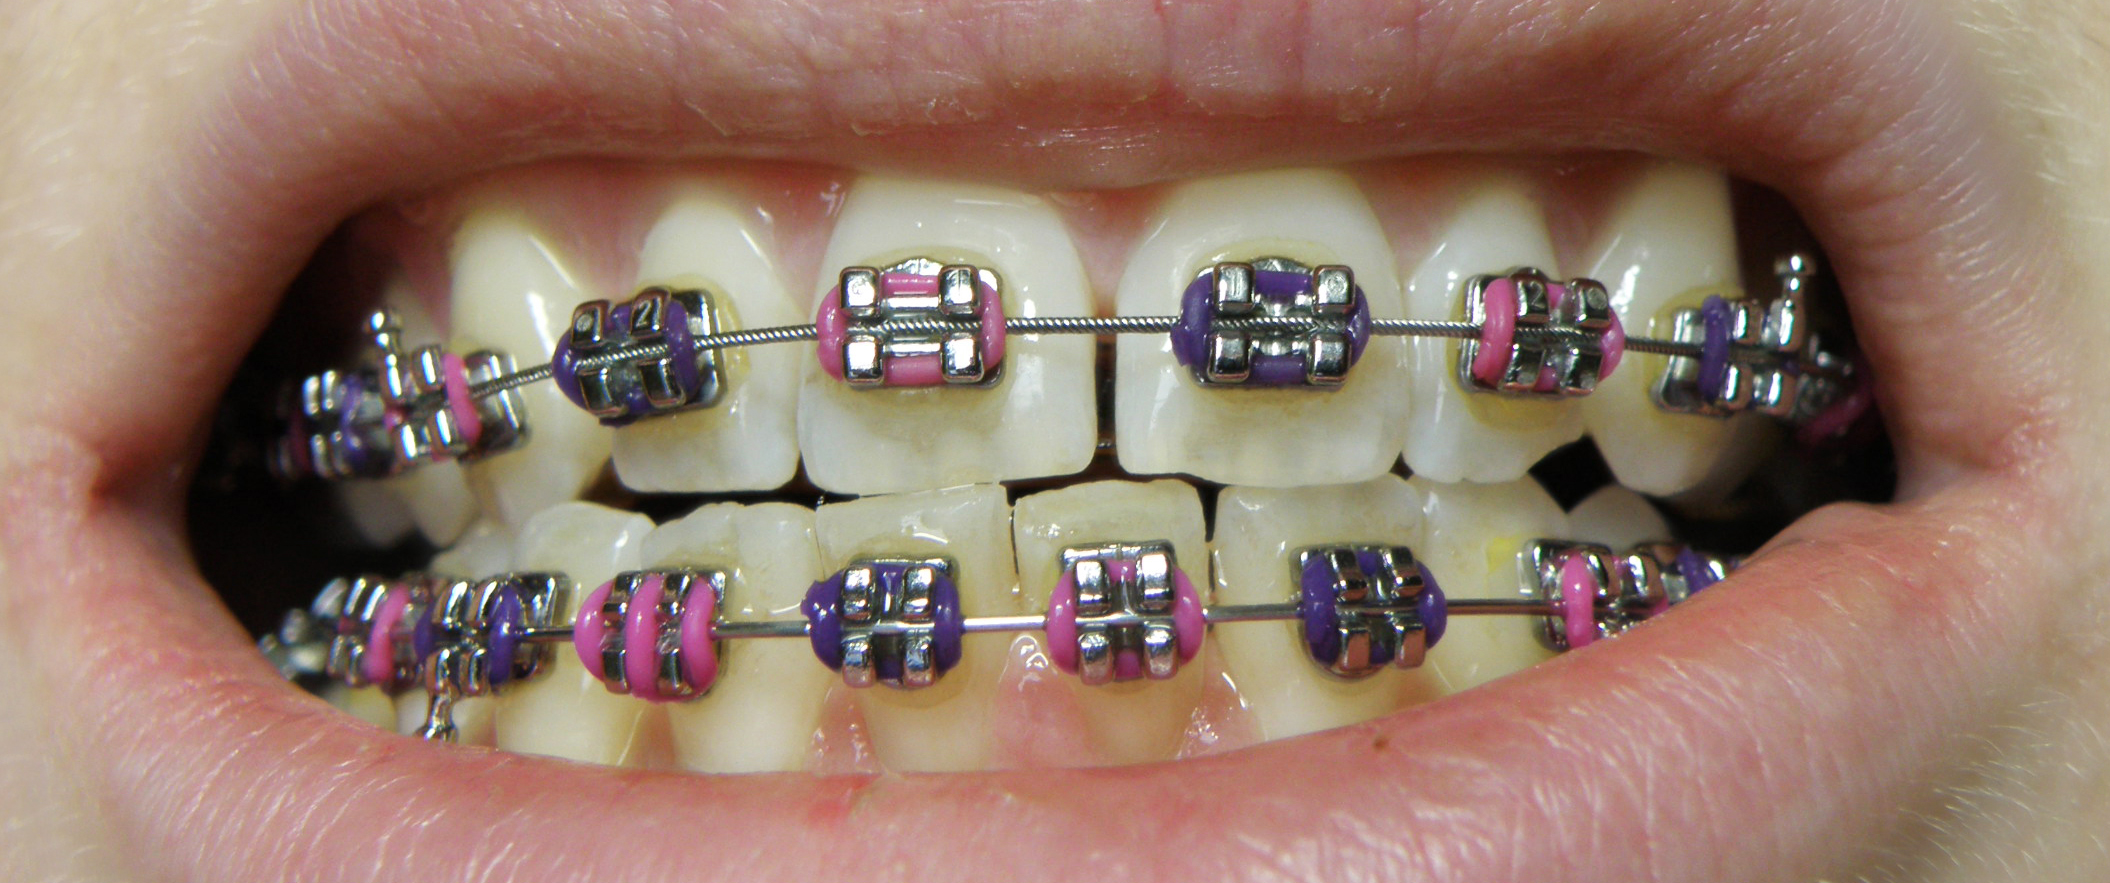 Dental Braces Wikipedia